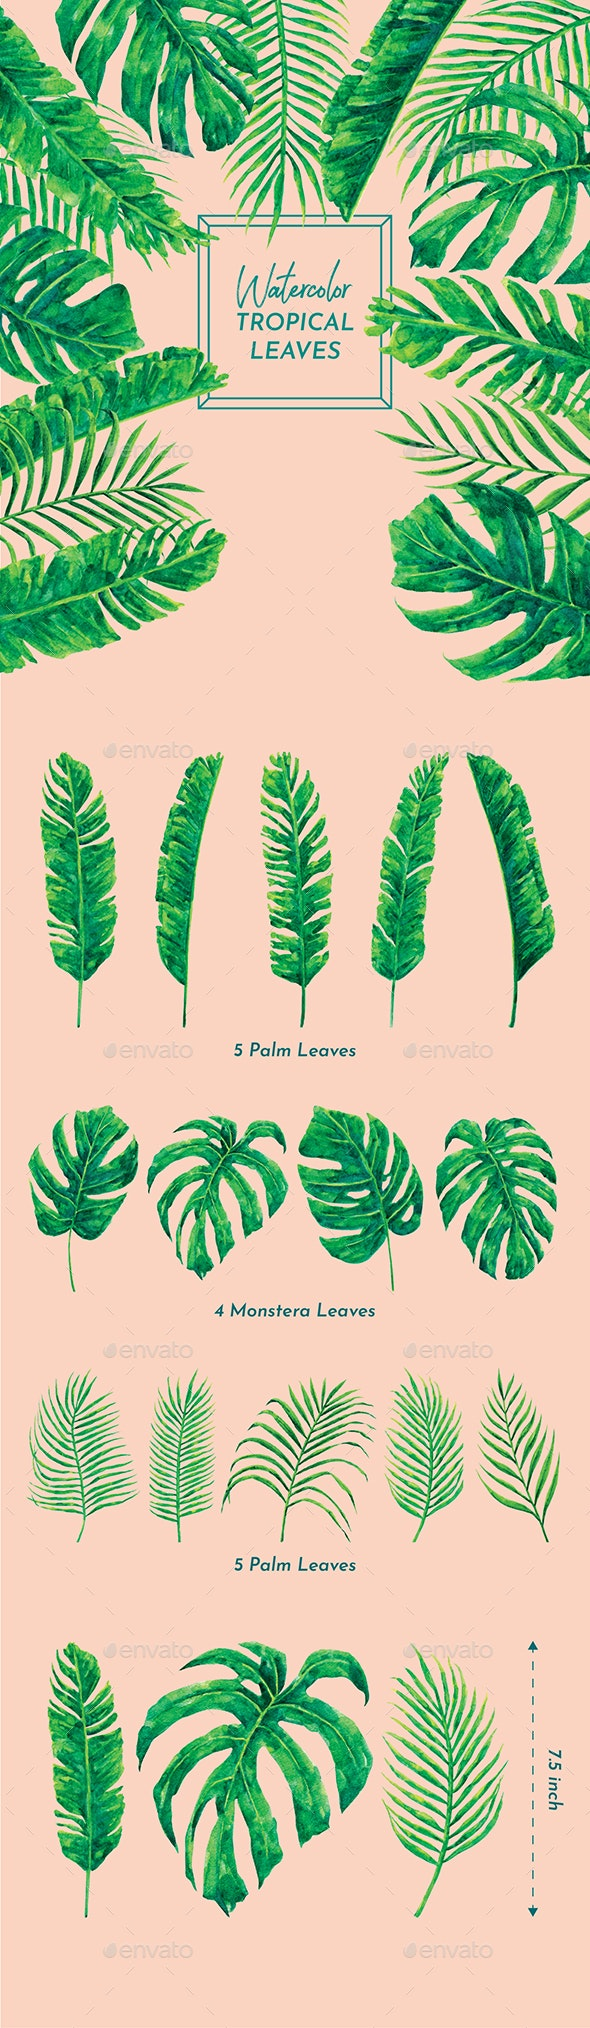 Watercolor Tropical Leaves - Objects Illustrations